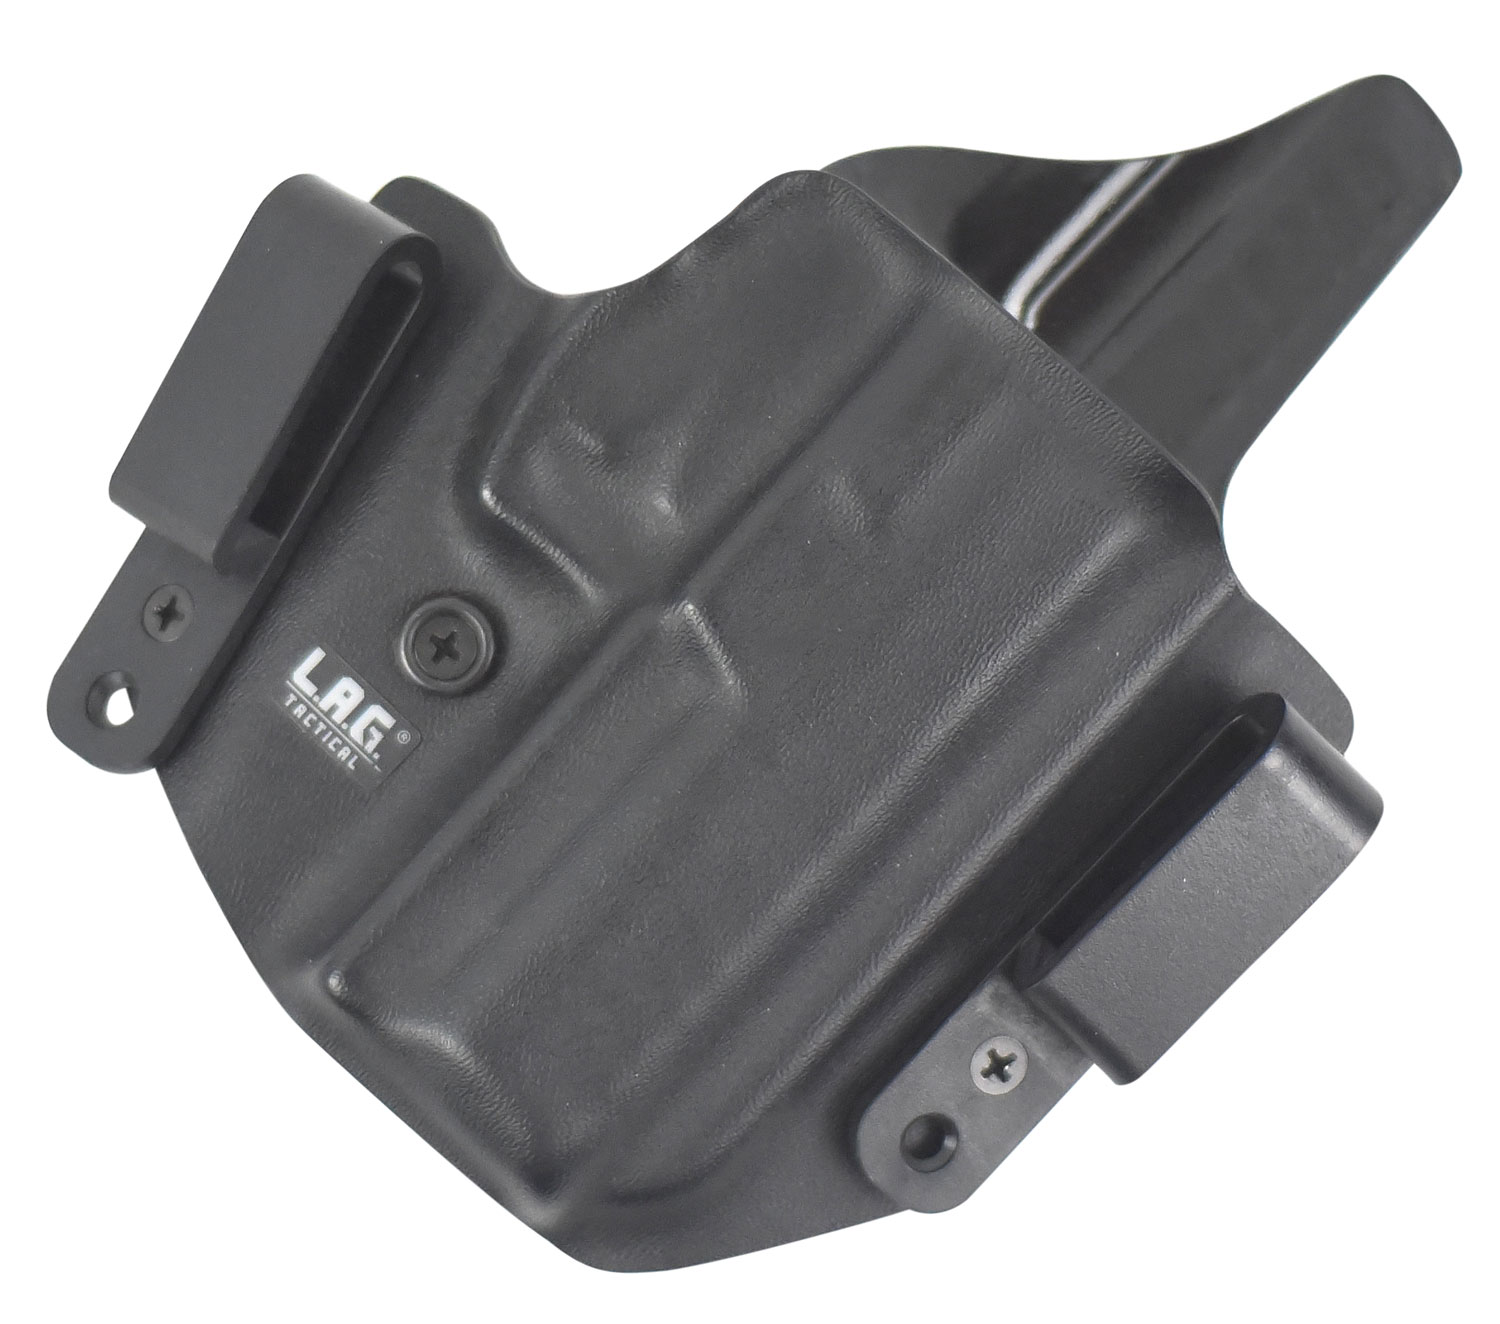 LAG TACTICAL INC 3013 Defender  Inside-Outisde-The-Waistband Holster Springfield XD-S 3.3